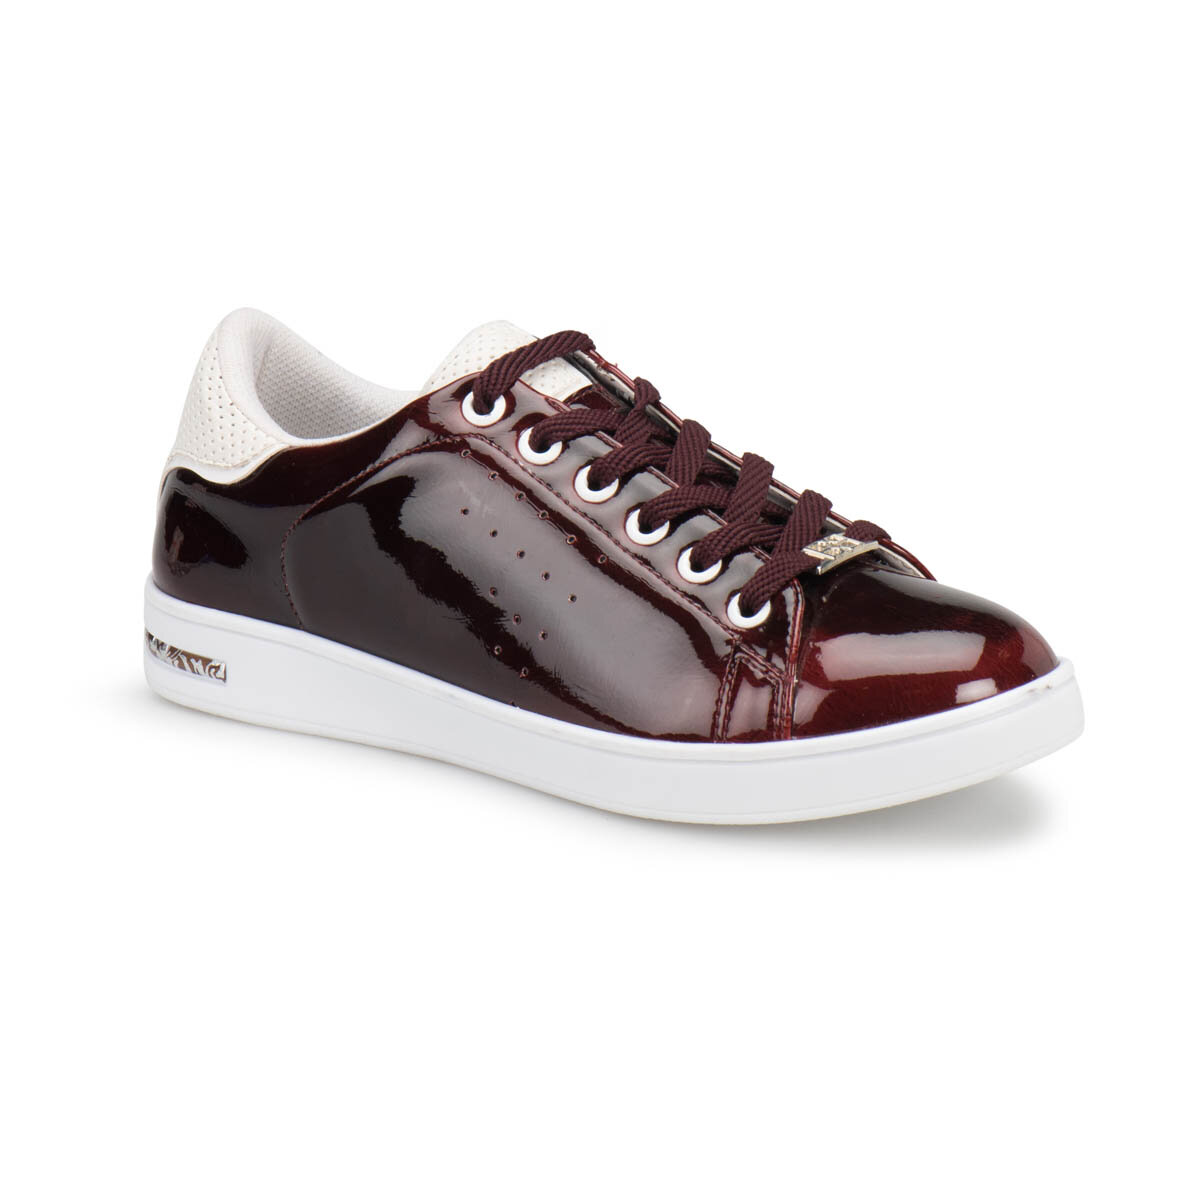 FLO Z219 Burgundy Women 'S Sneaker Shoes BUTIGO